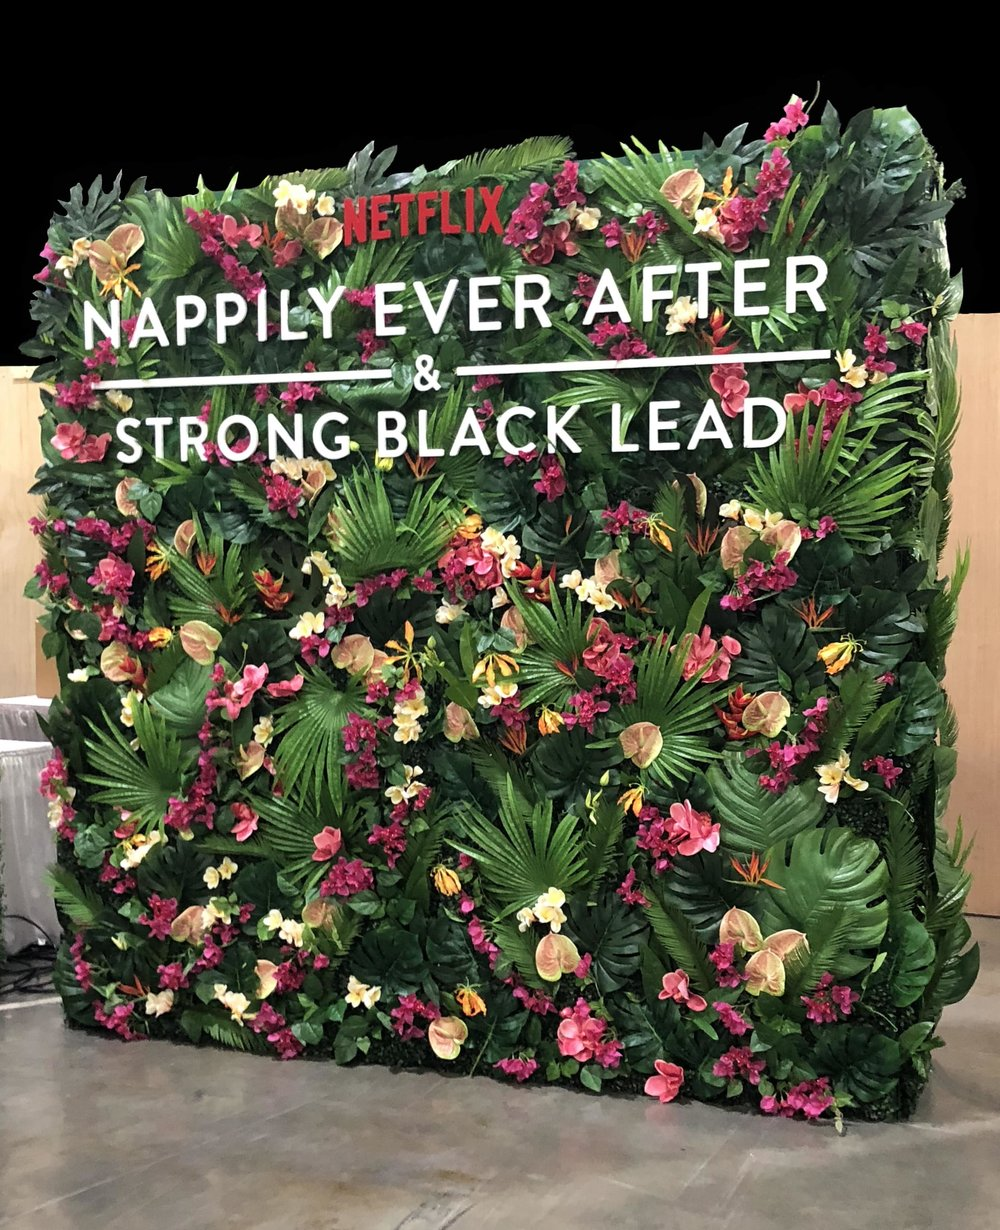 CASHMERE AGENCY - NETFLIX - NAPPILY EVER AFTER - INFLUENCER PARTY - B FLORAL